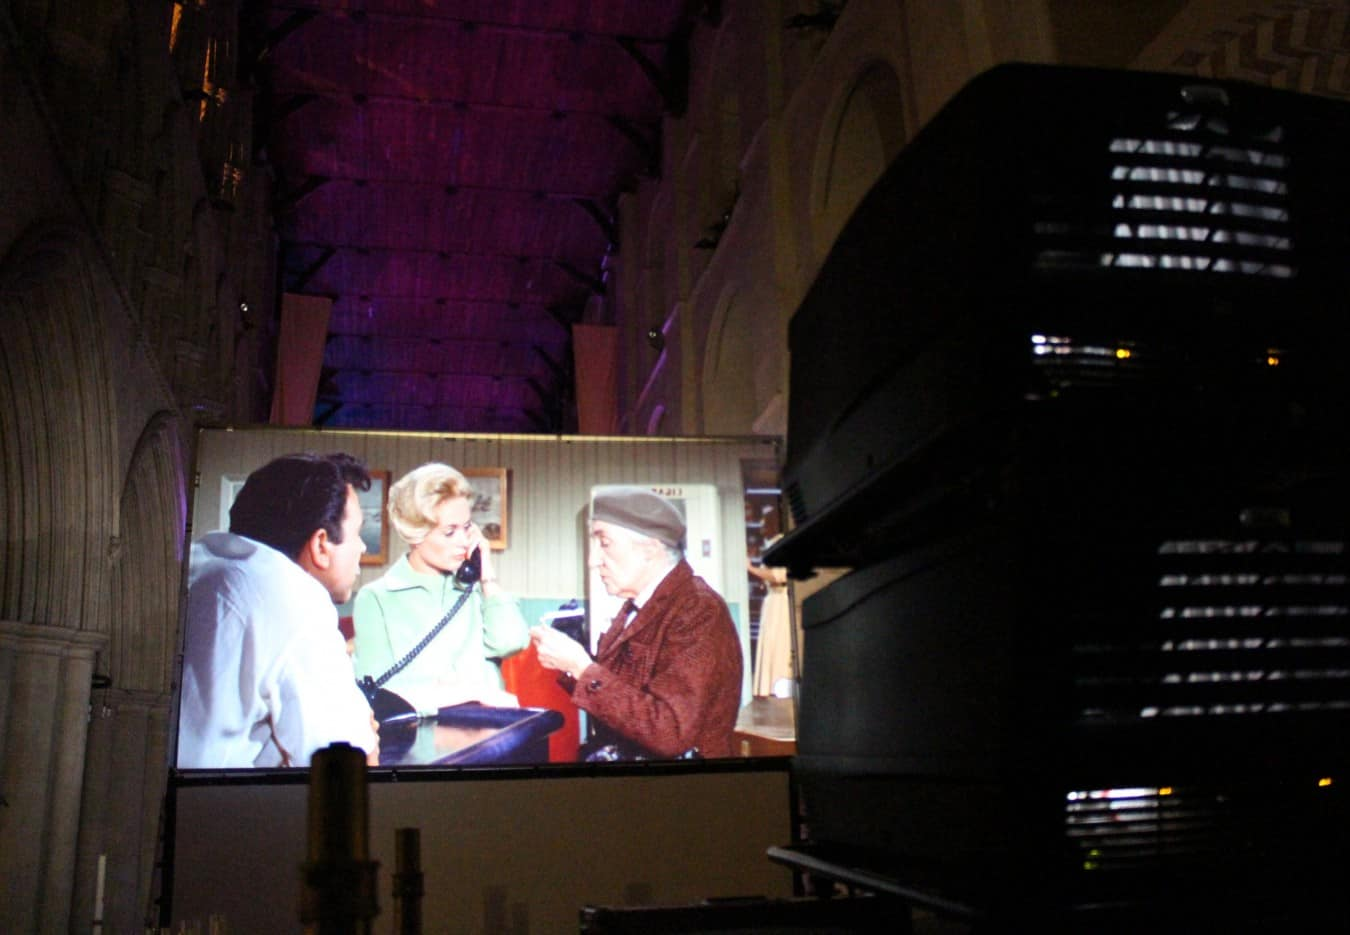 Projector Hire Video Screen Barco Film Festival St Albans Cathedral